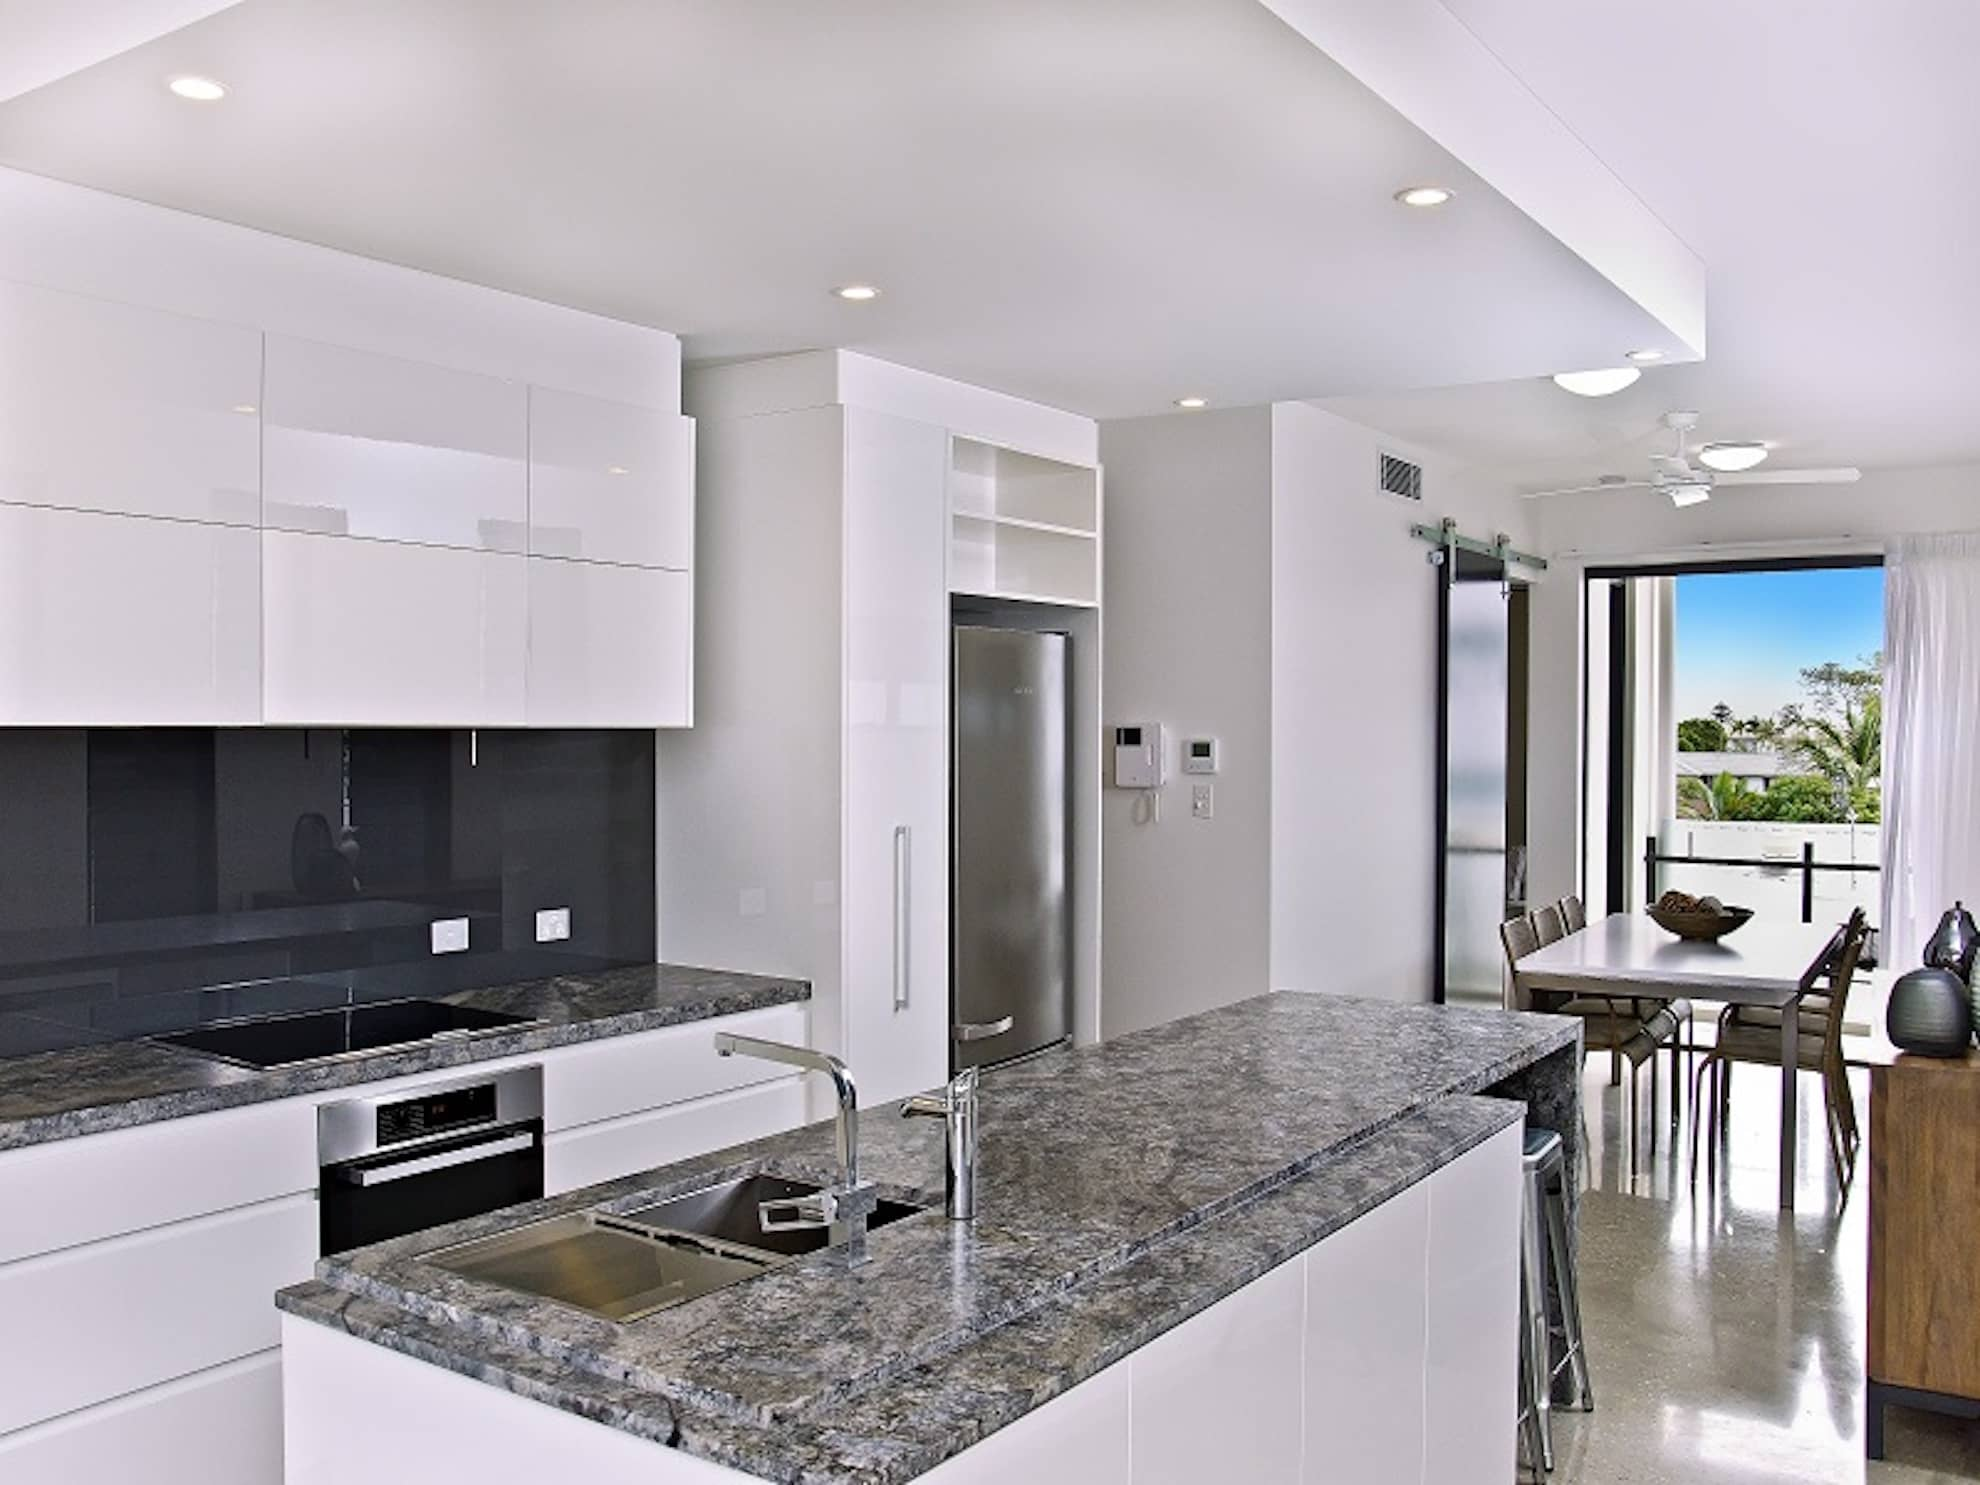 Clark Street Apartments project by mdesign, a building design practice that operates on the Sunshine Coast.